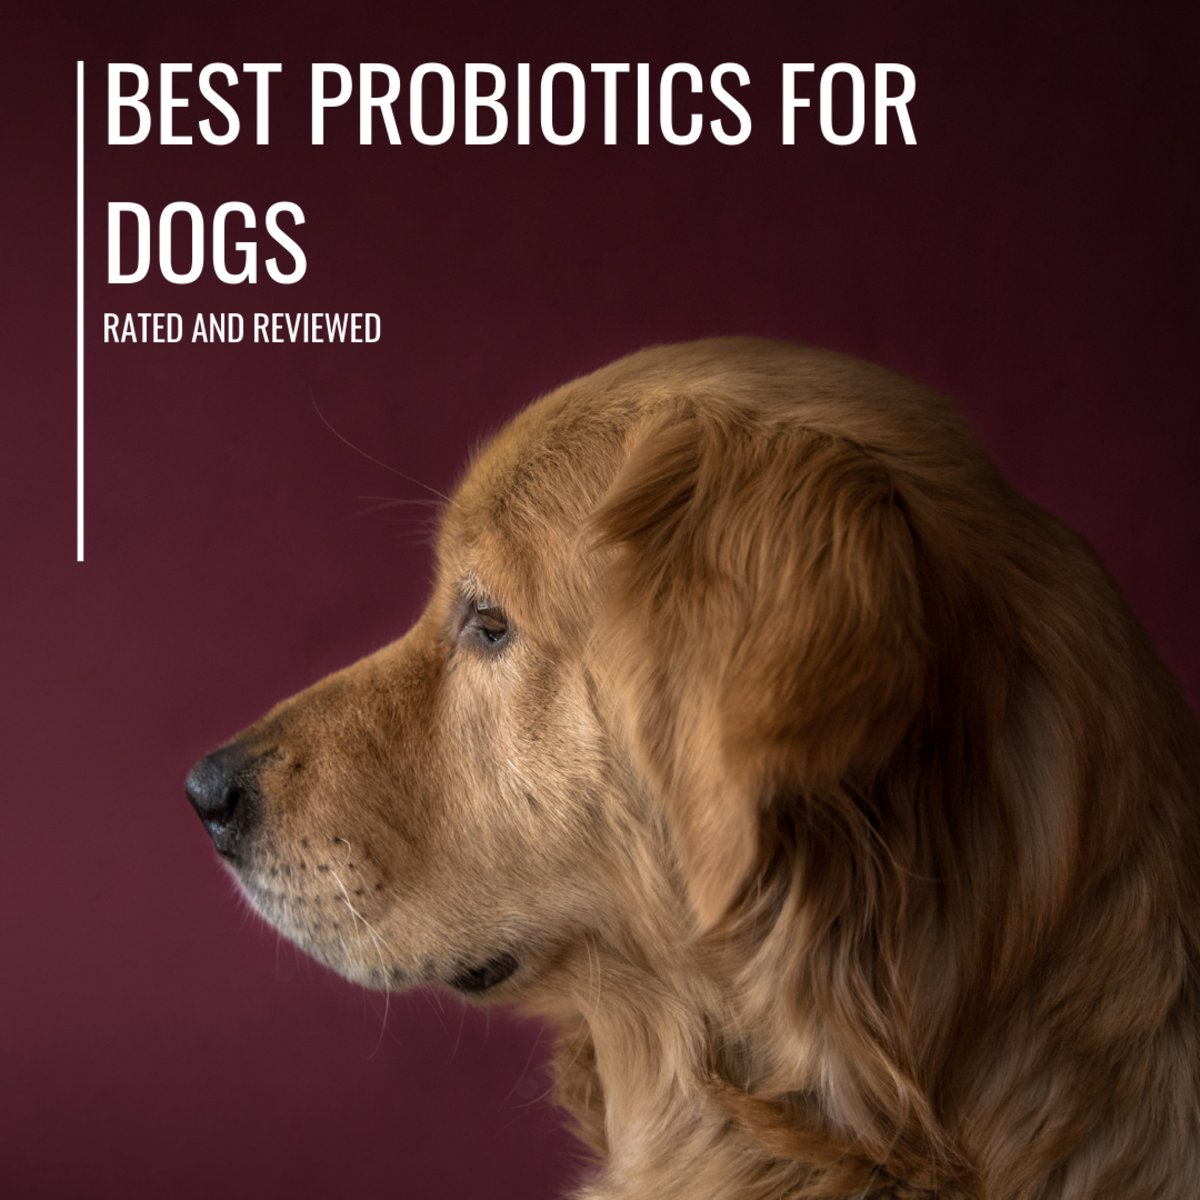 Probiotics may help relieve common gastrointestinal upset and disorders in dogs.